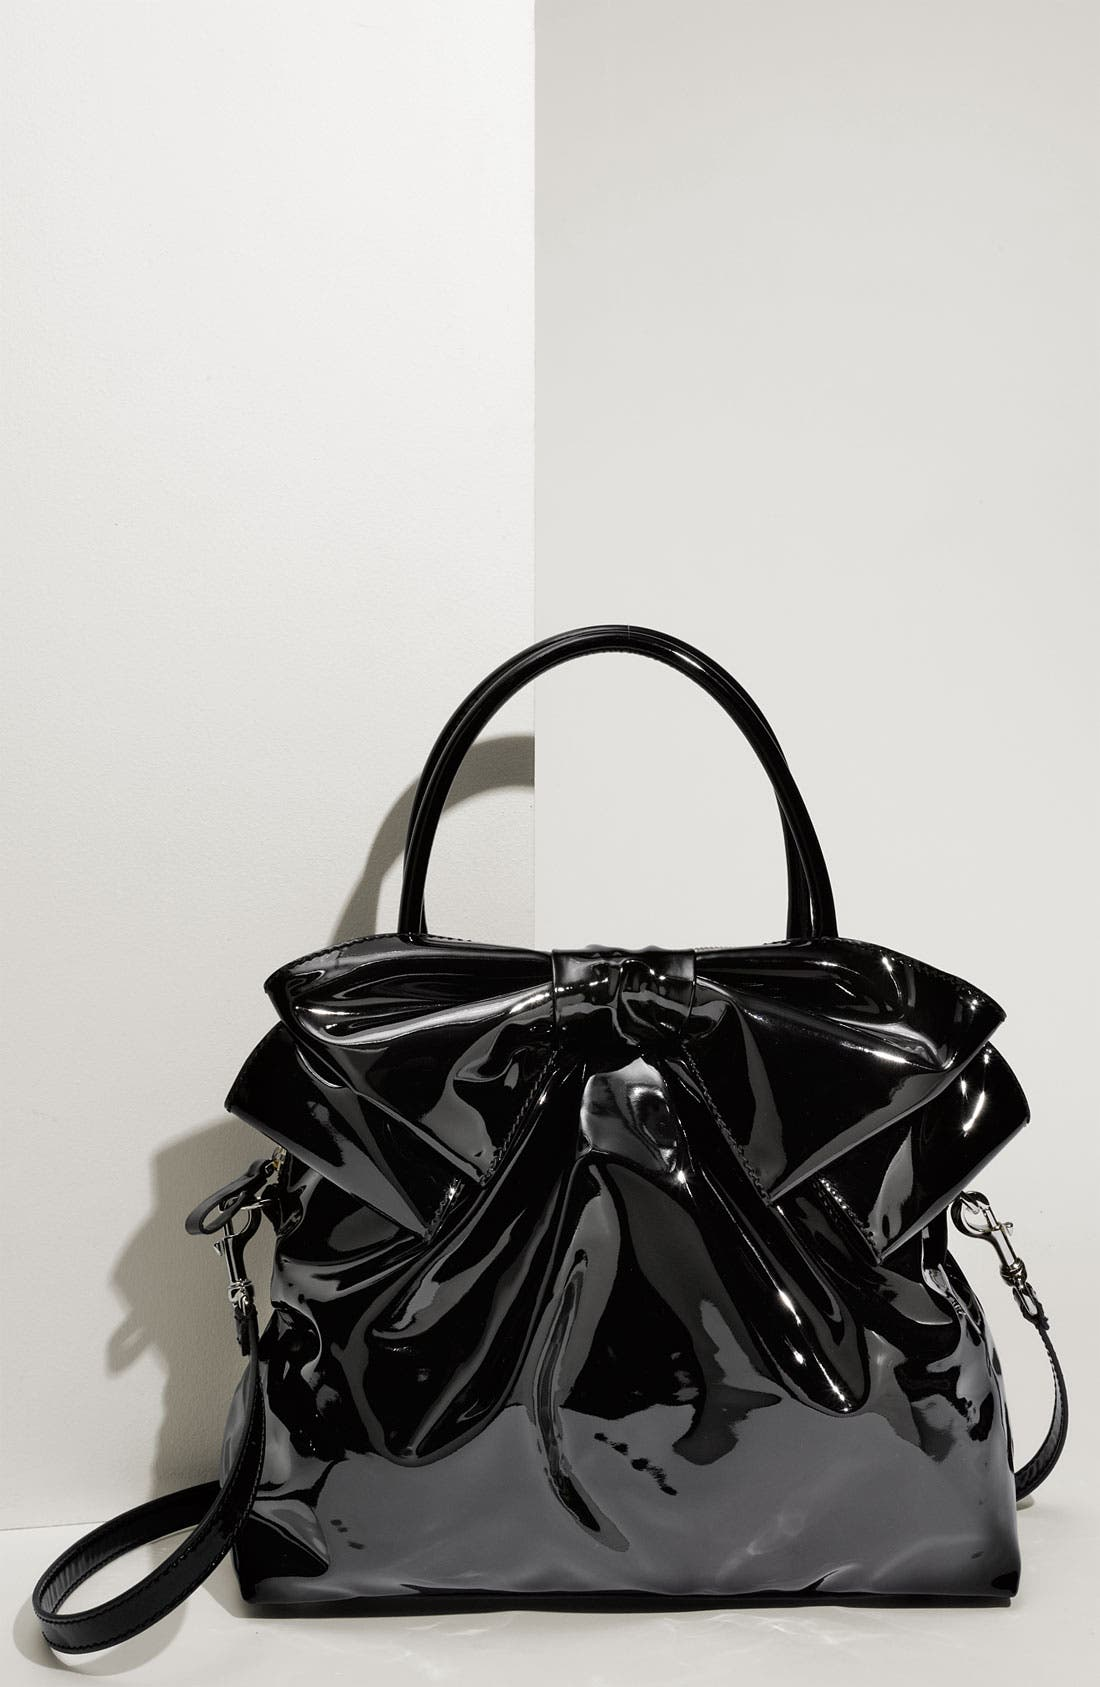 Alternate Image 1 Selected - Valentino 'Lacca Bow' Dome Handbag